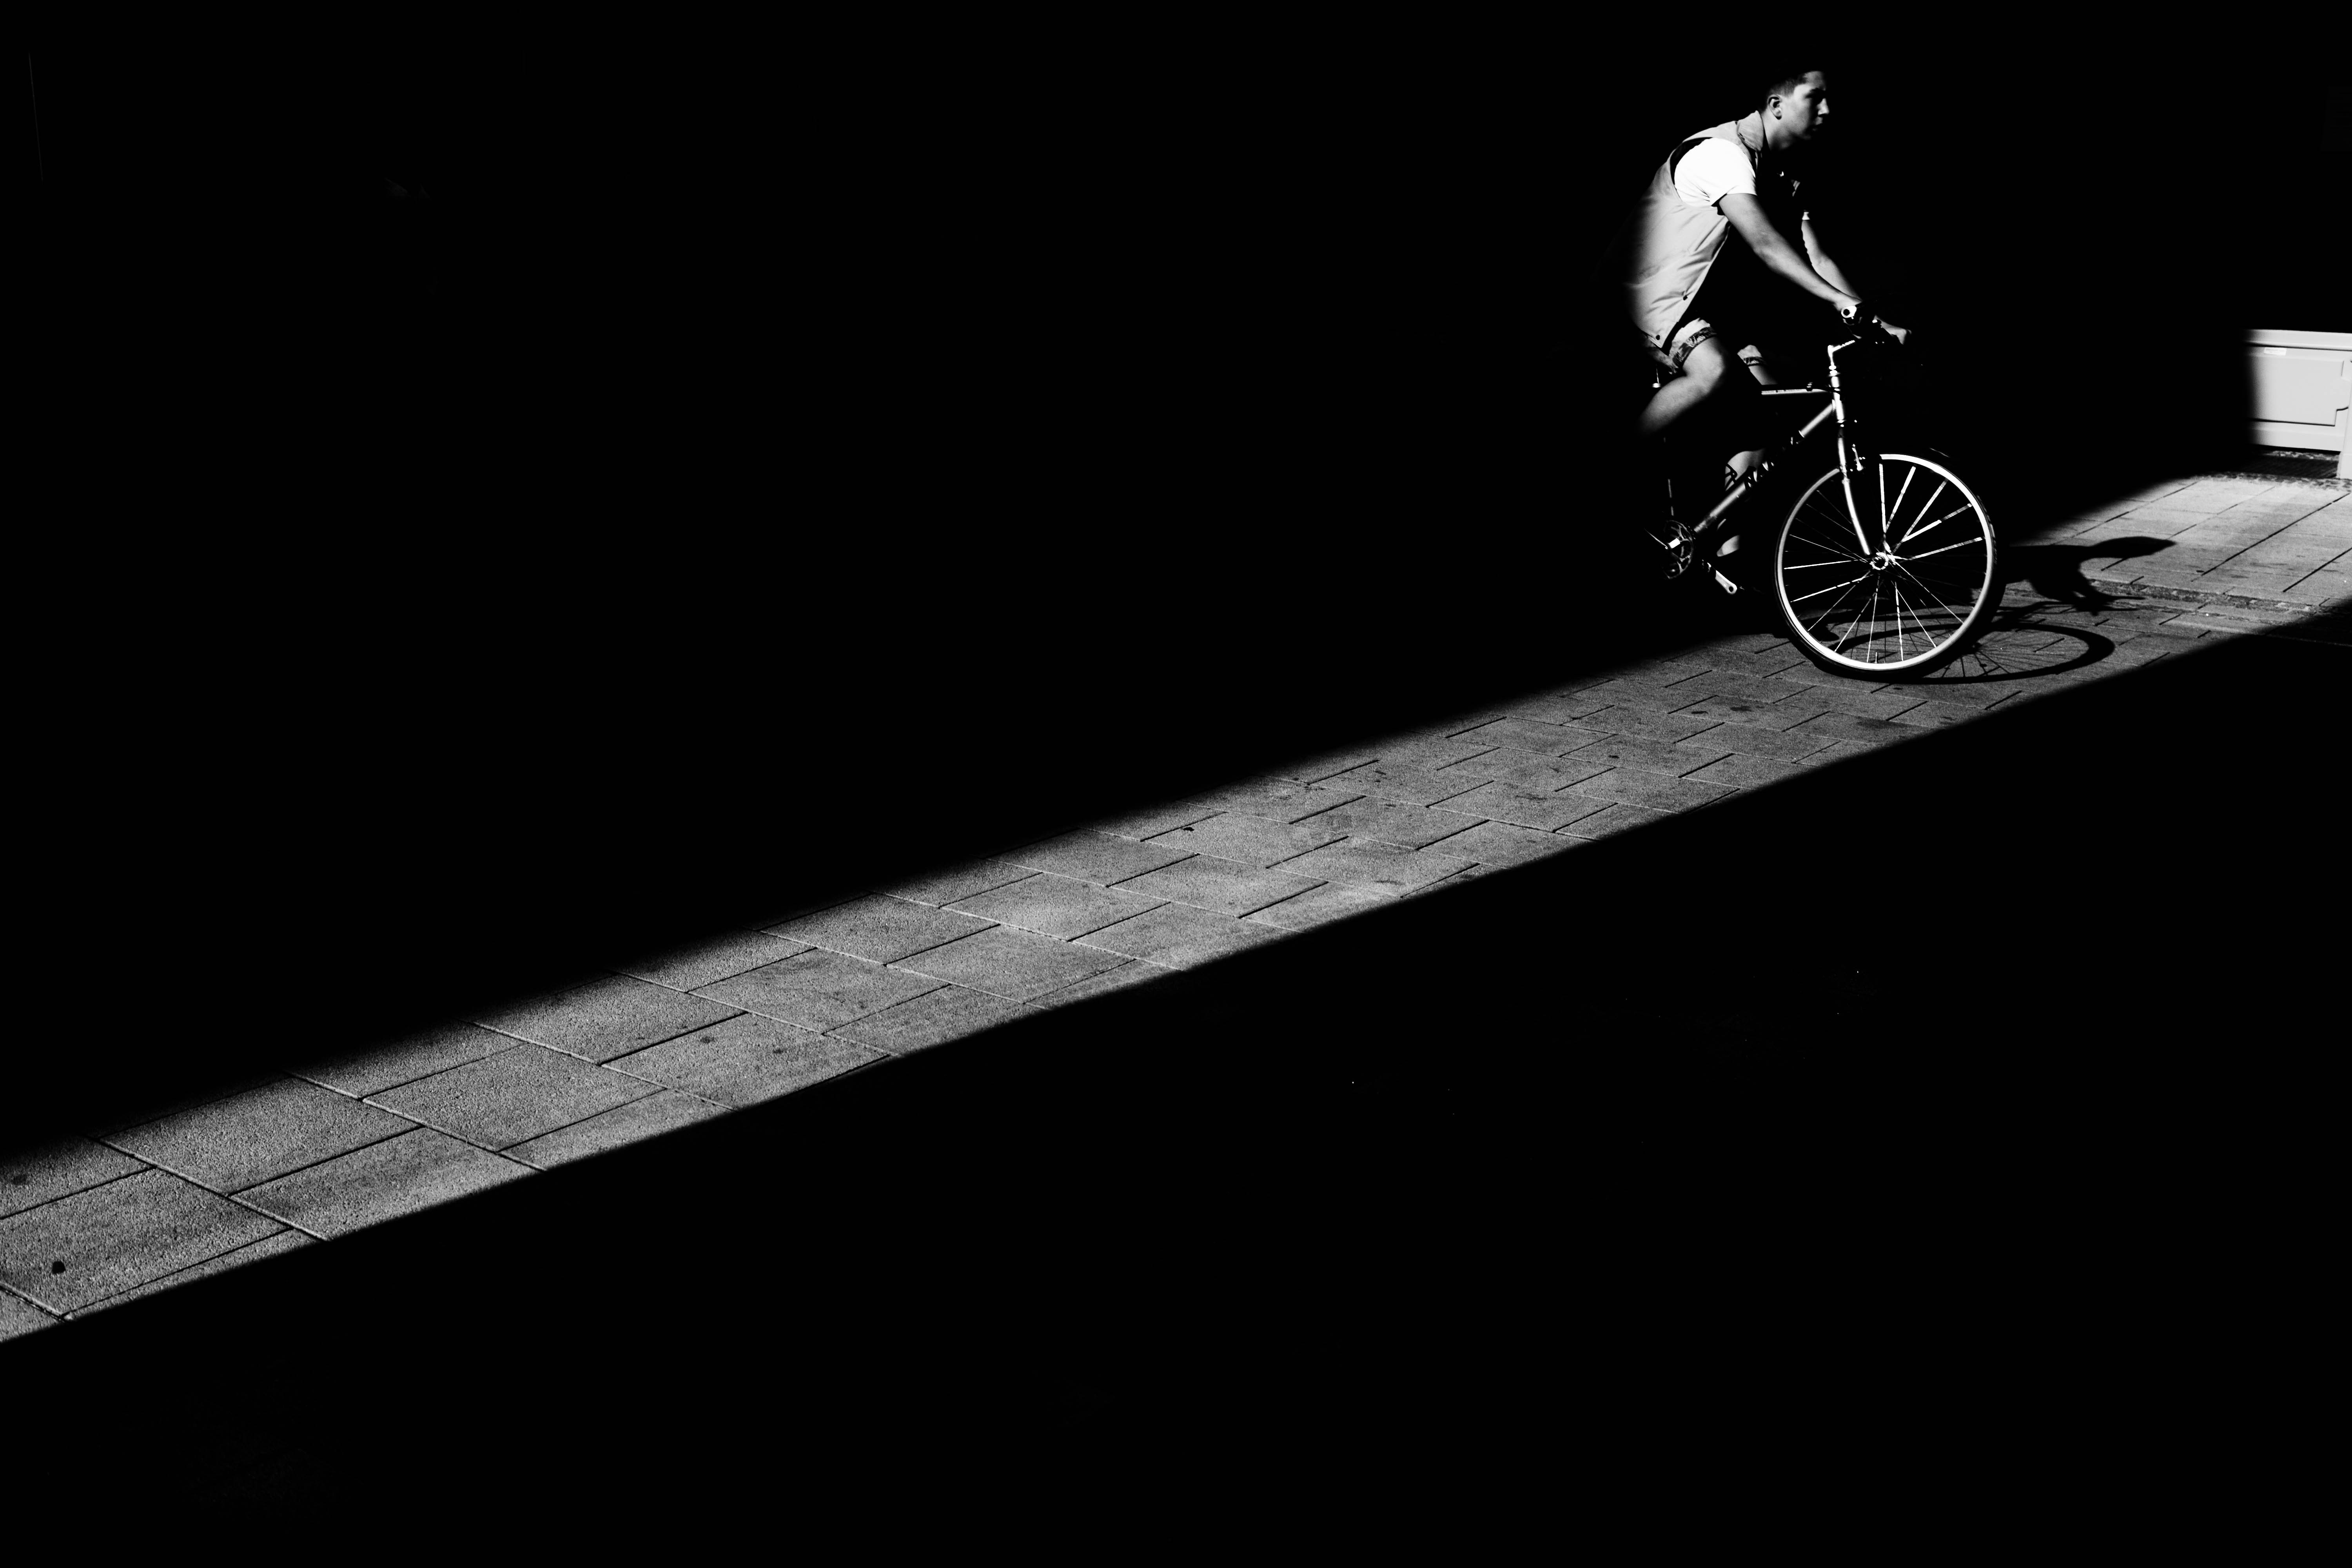 man riding bicycle in dark area